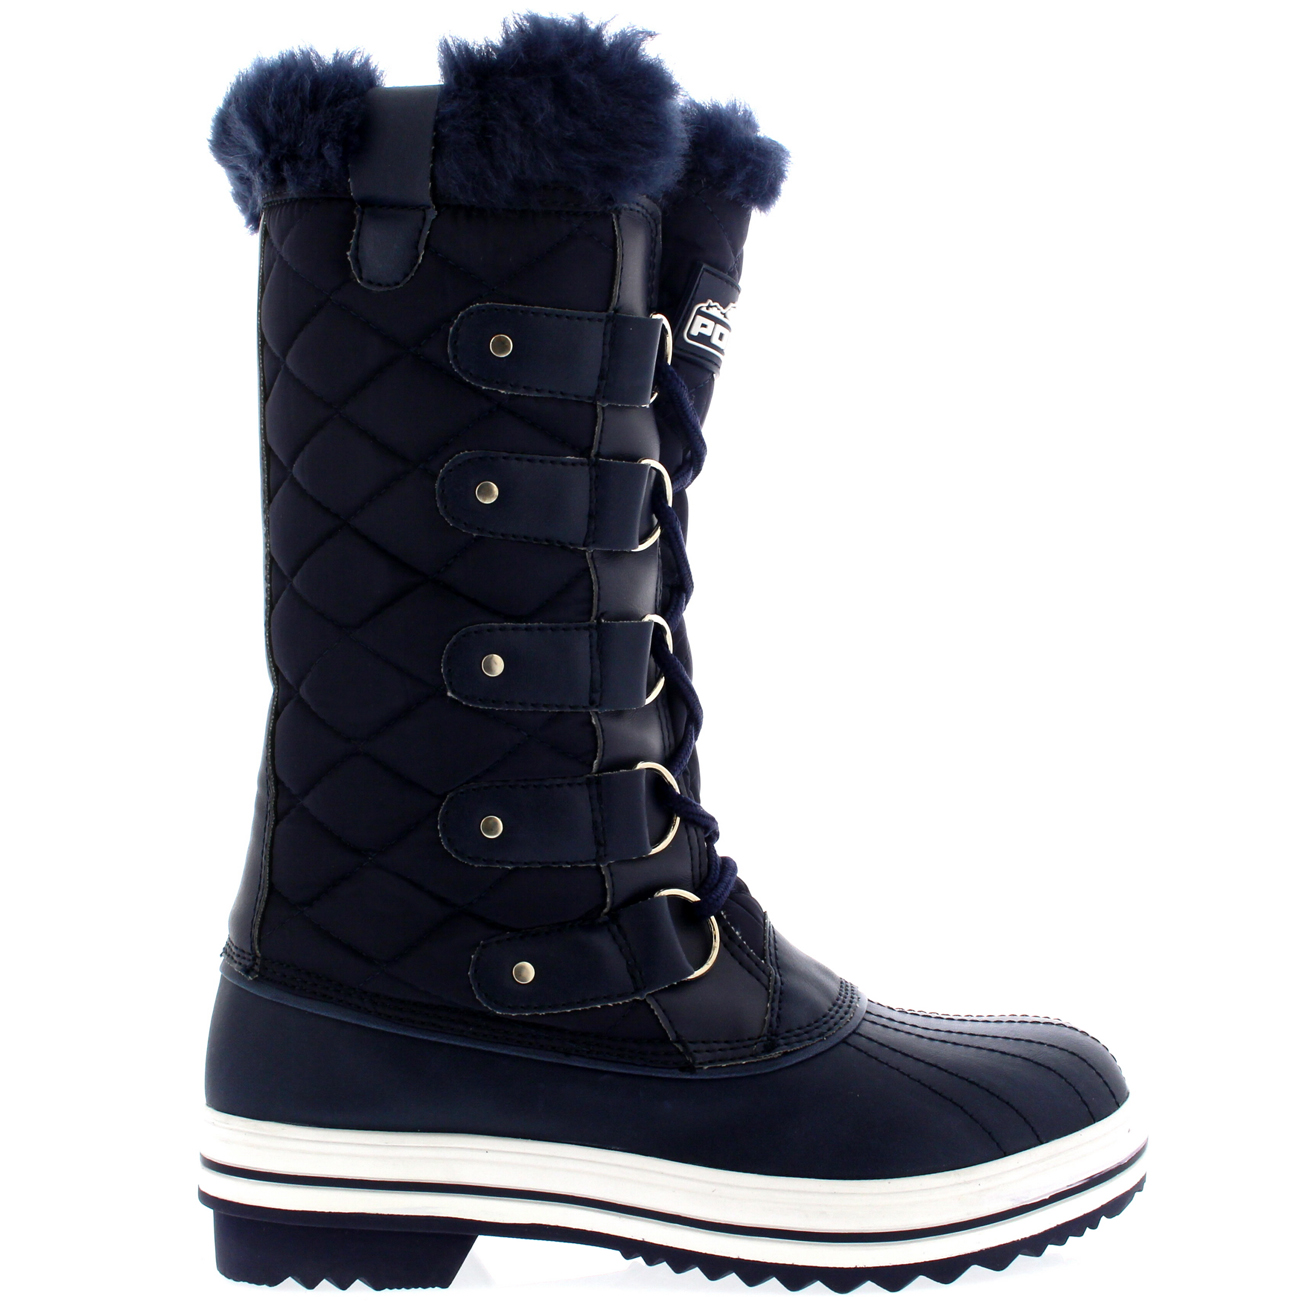 Beautiful WomensQuiltedRainLaceUpFurLinedWarmShoesDuckWinterSnow